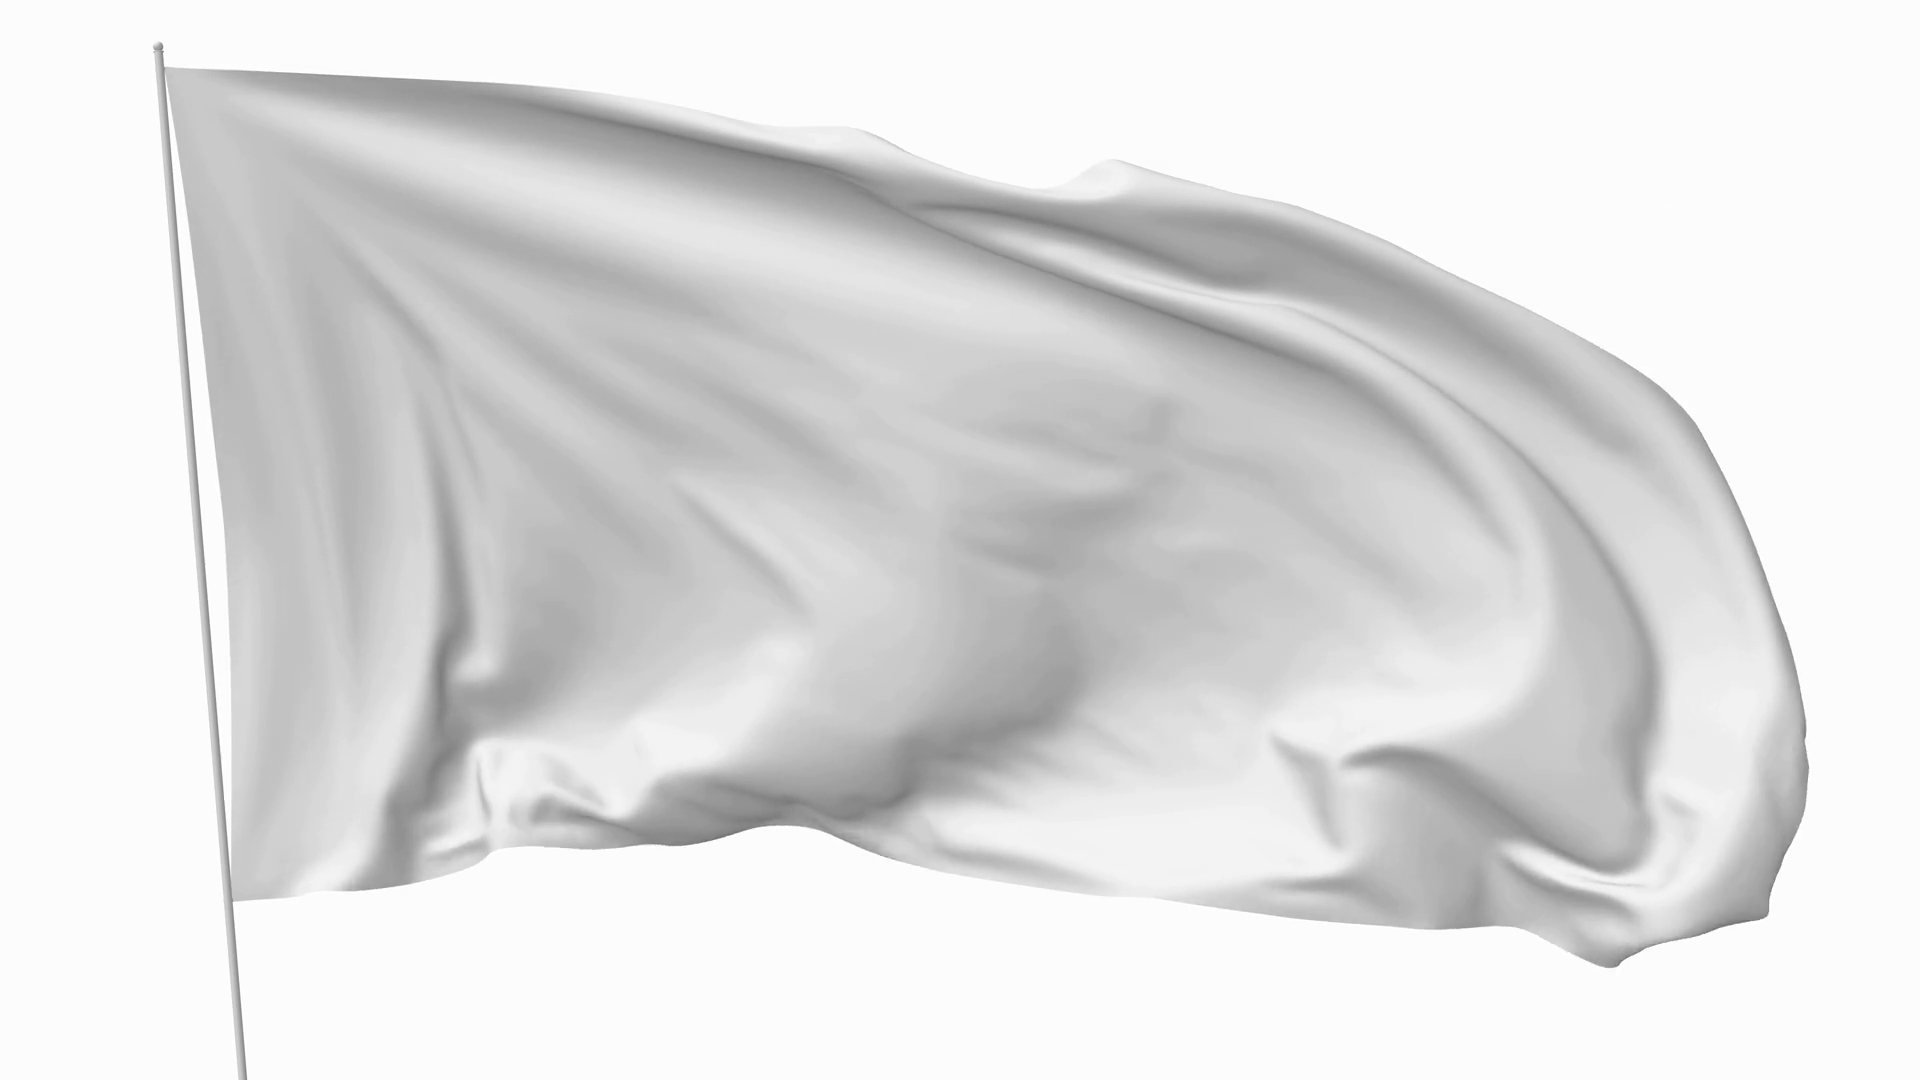 White Flag Png (103+ images in Collection) Page 1.